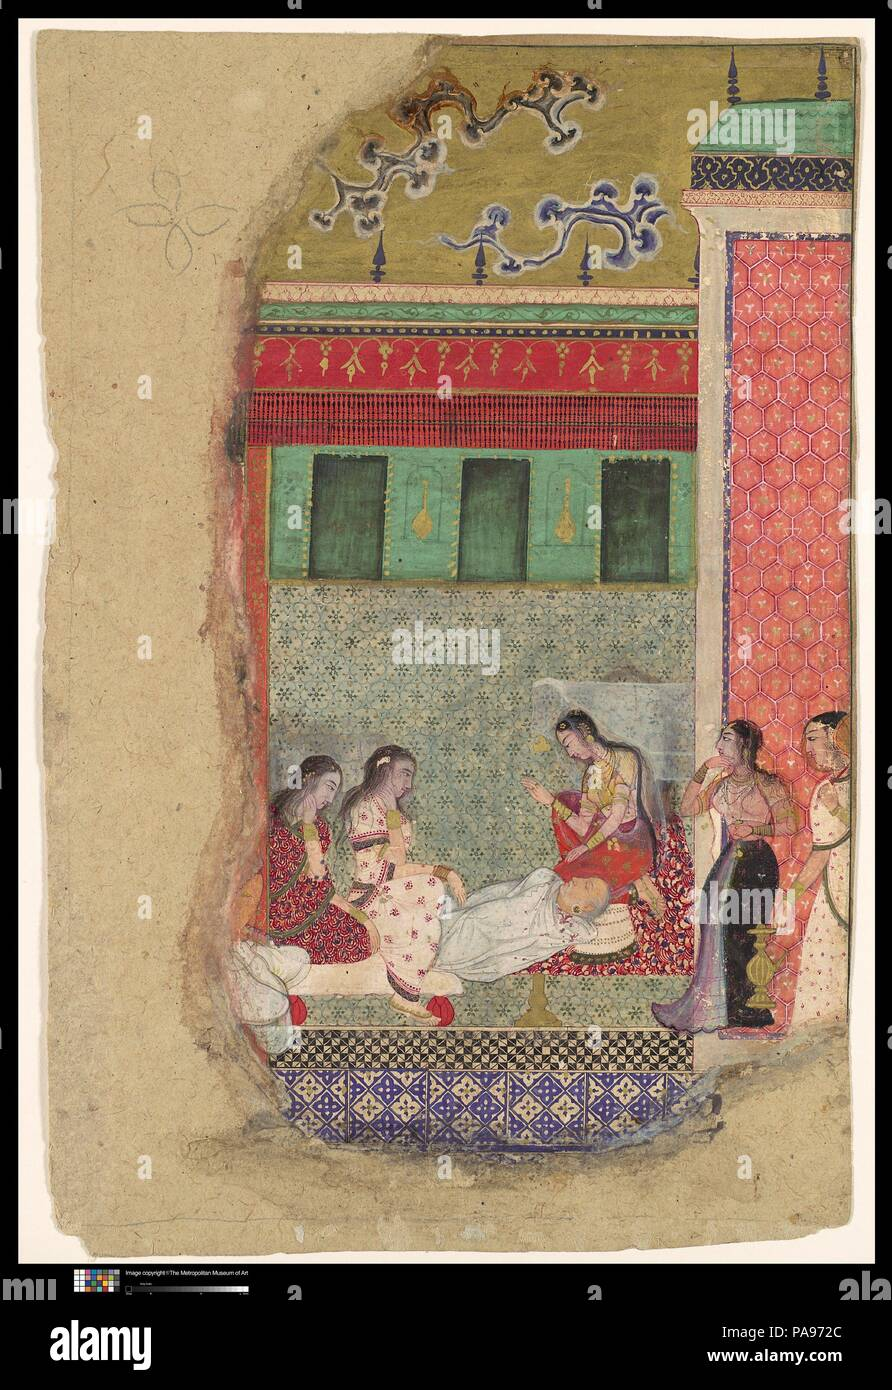 'The Death of King Dasharatha, the Father of Rama', Folio from a Ramayana. Dimensions: Painting: H. 10 1/2 in. (26.7 cm)  W. 5 13/16 in. (14.8 cm)  Page: H. 10 7/8 in. (27.6 cm)   W. 7 1/2 in. (19.1 cm)  Mat: H. 19 1/4 in. (48.9 cm)  W. 14 1/4 in. (36.2 cm). Date: ca. 1605.  King Dasharatha emerges in the Ramayana as essentially a noble character, though flawed by the weakness that allowed him to be swayed by his second wife Kaikeyi, whose ambitions for her own son caused the king to banish the crown prince Rama for fourteen years. Having succumbed to this pressure, Dasharatha, plagued by regr - Stock Image